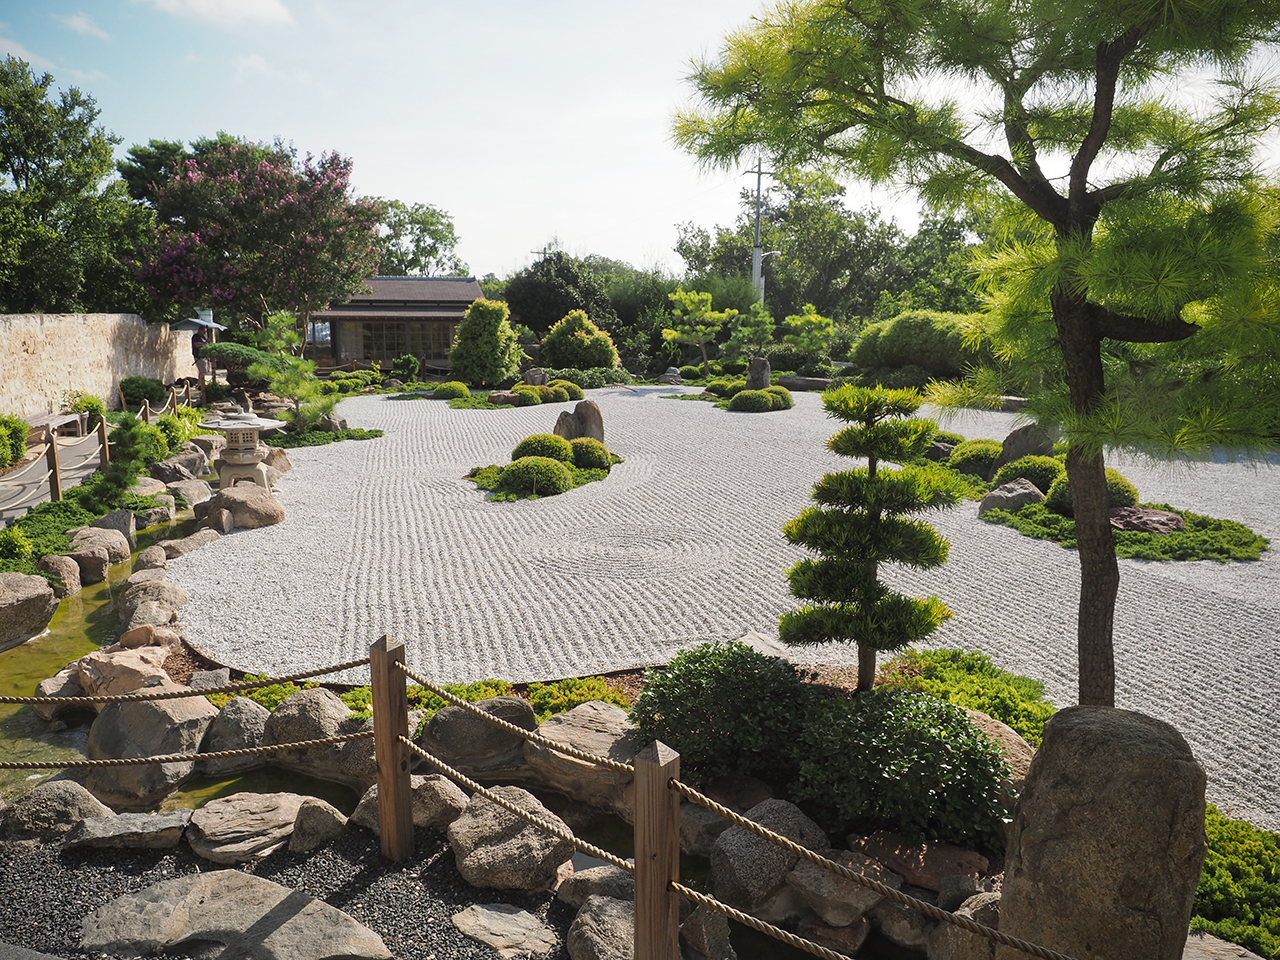 Japanese Garden of Peace at the National Museum of the Pacific War - Photo: Trish Rawls